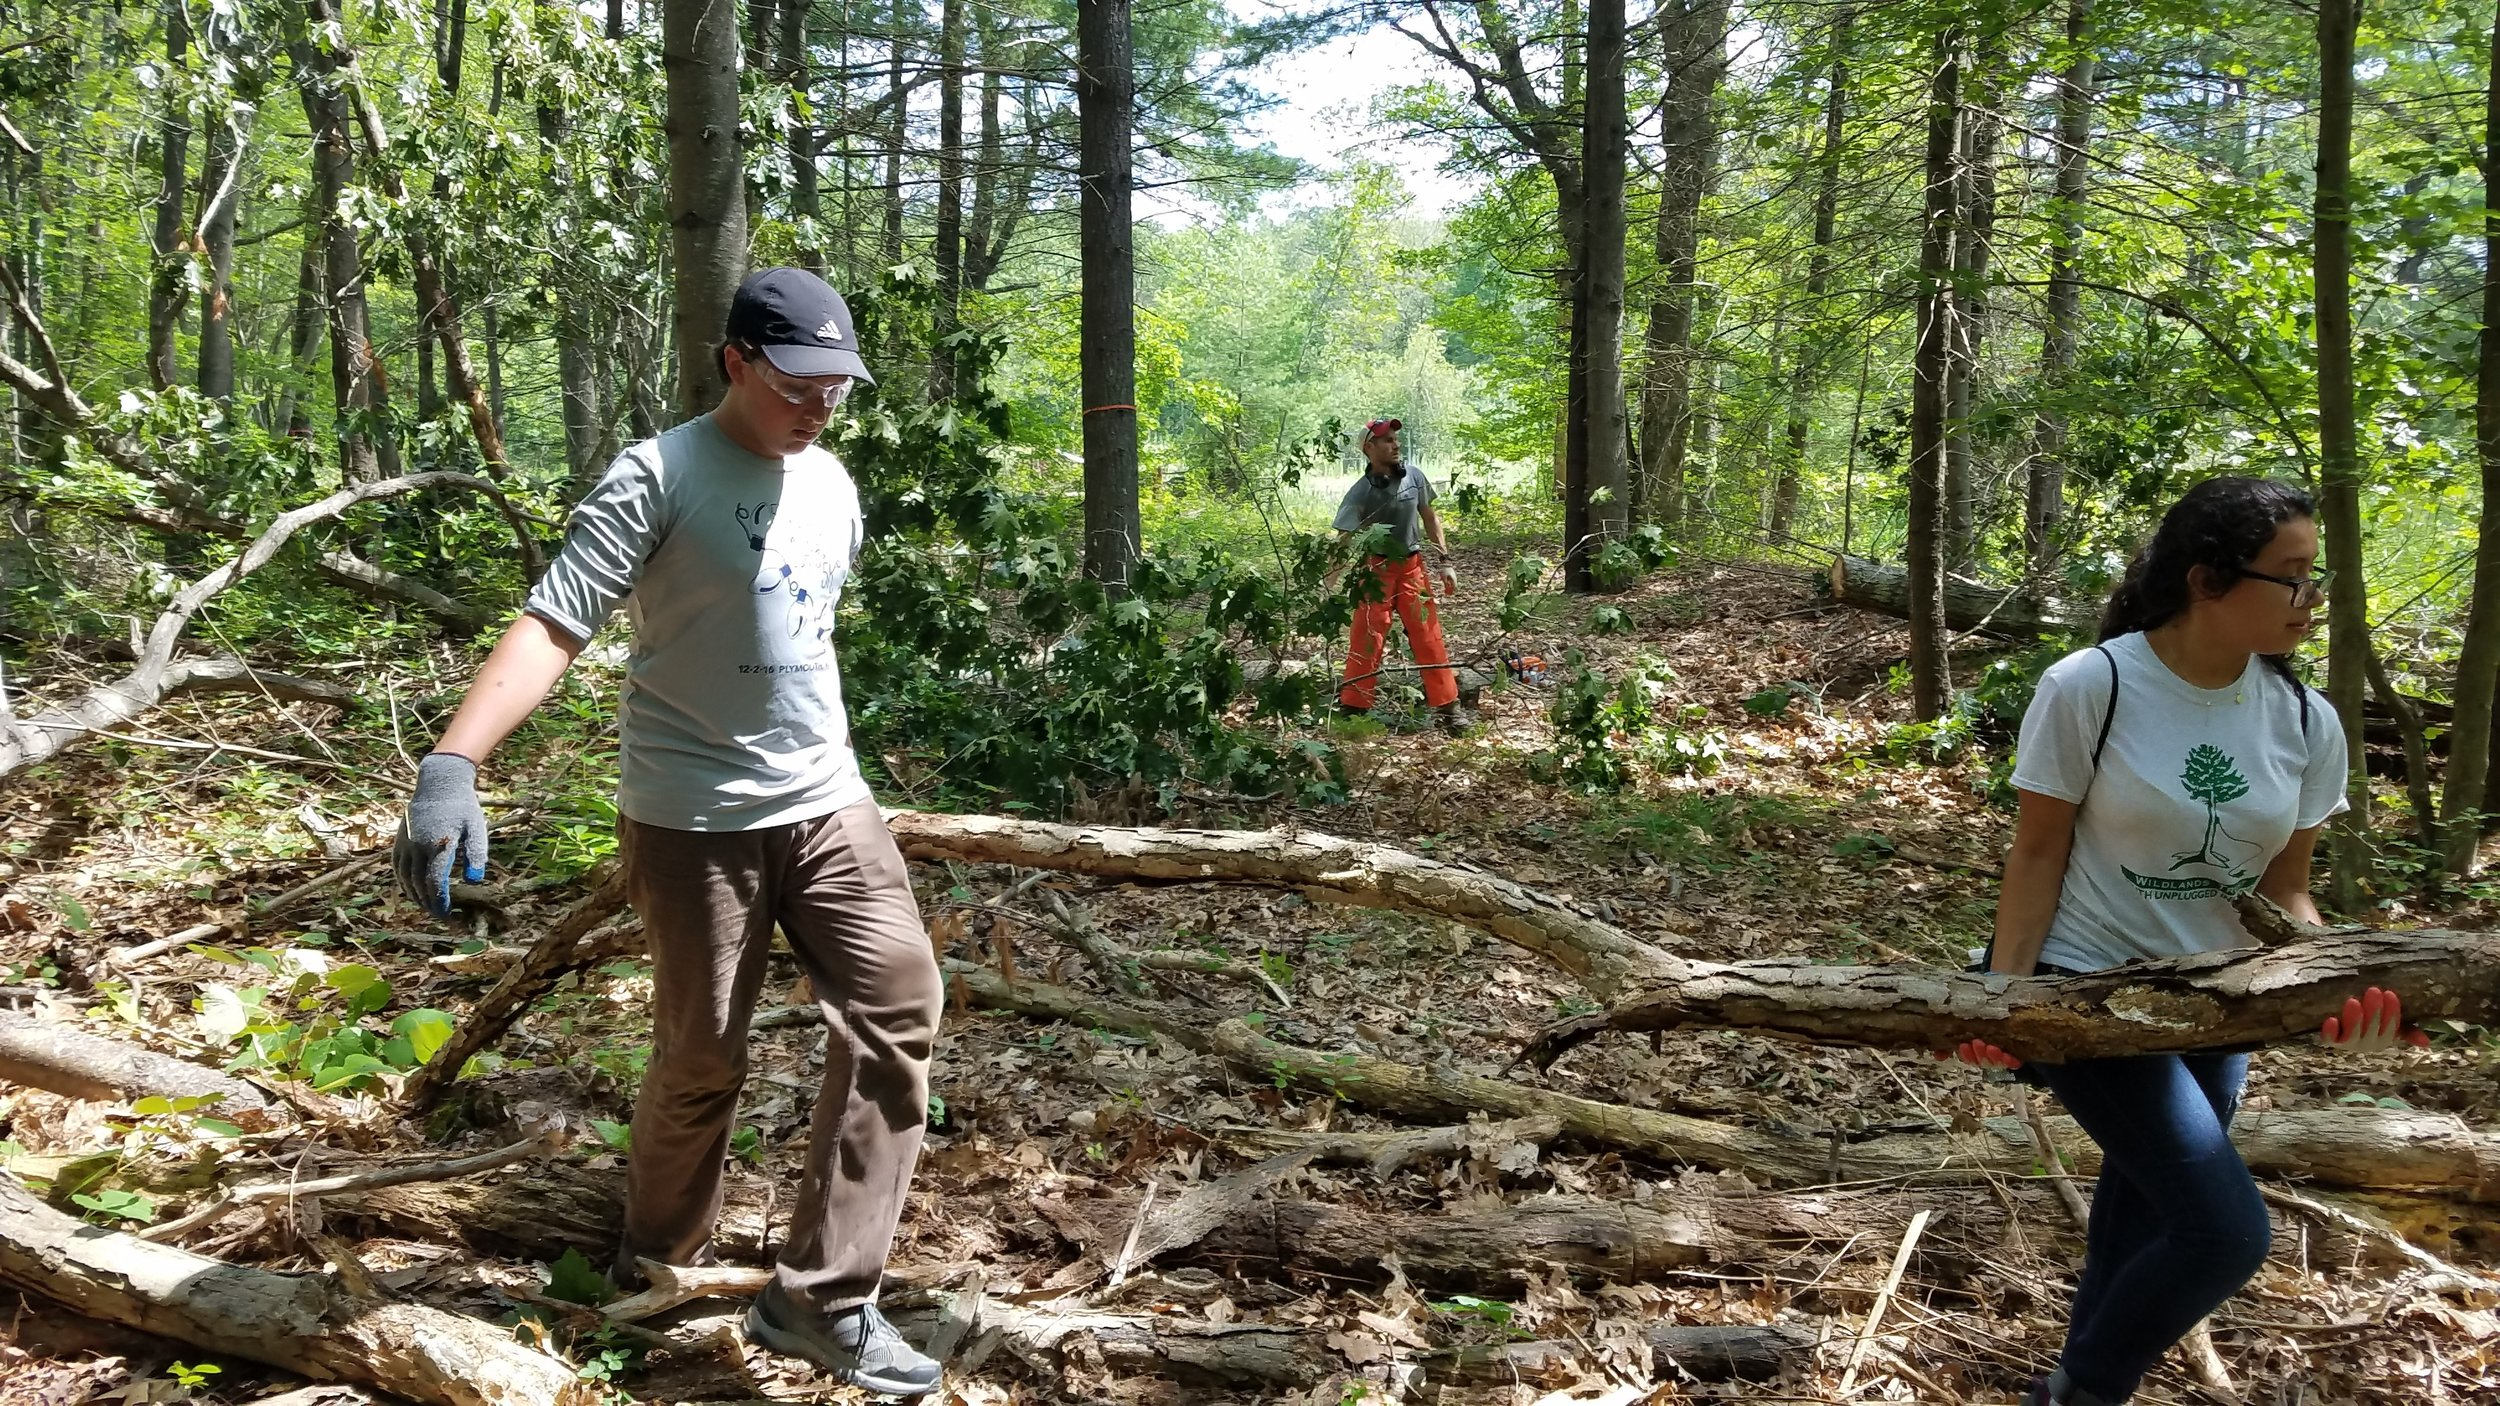 Day Three: Trail building at Union Point, Weymouth